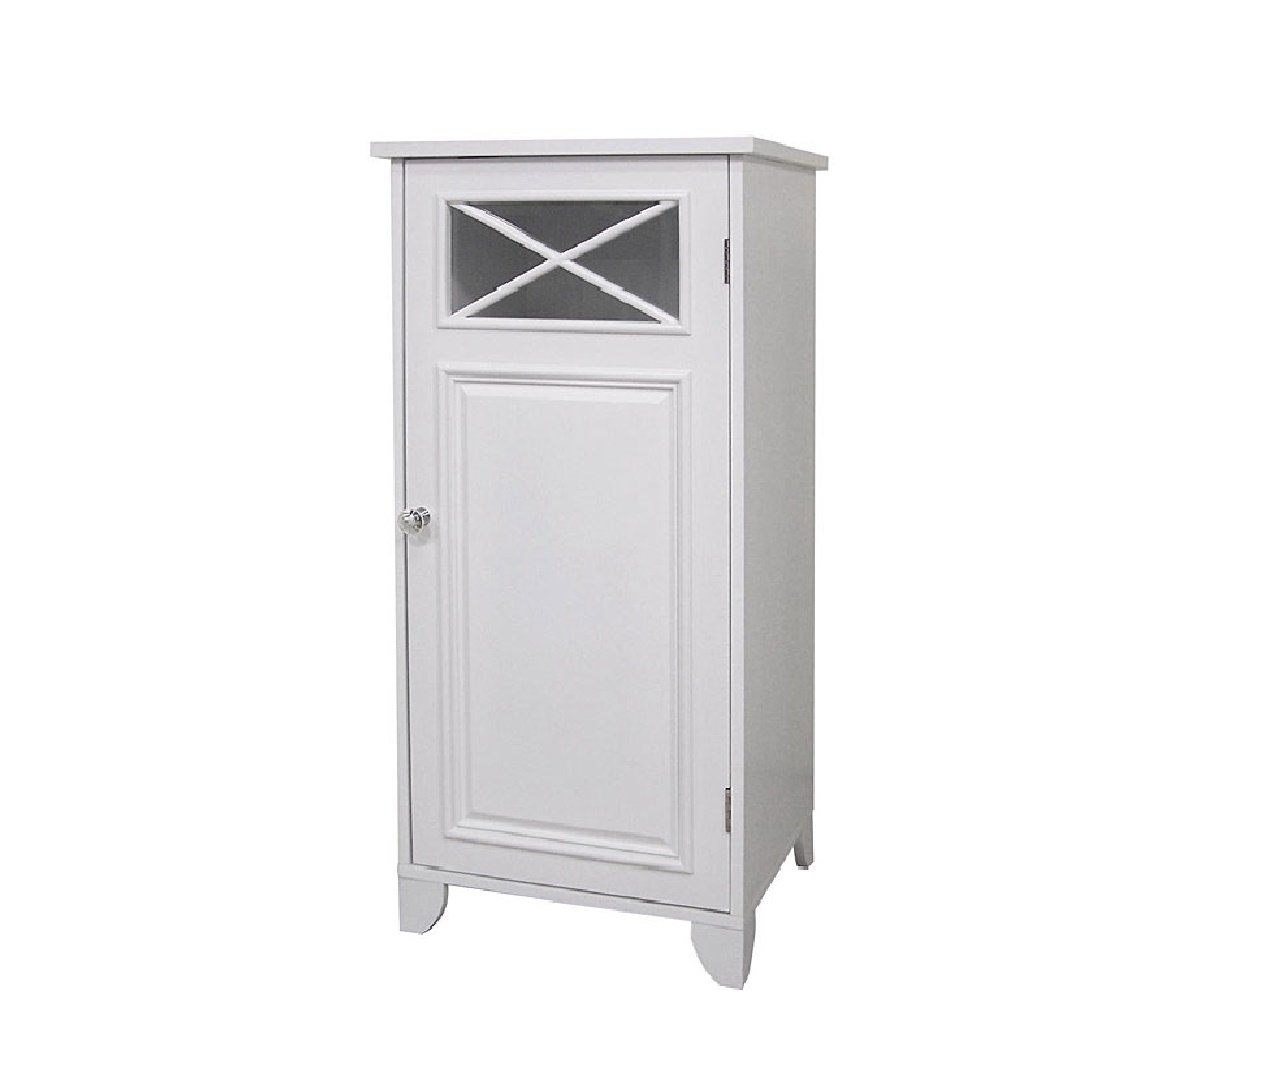 Amazon.com: This Virgo Floor Cabinet Is a Charming Accent to Your ...